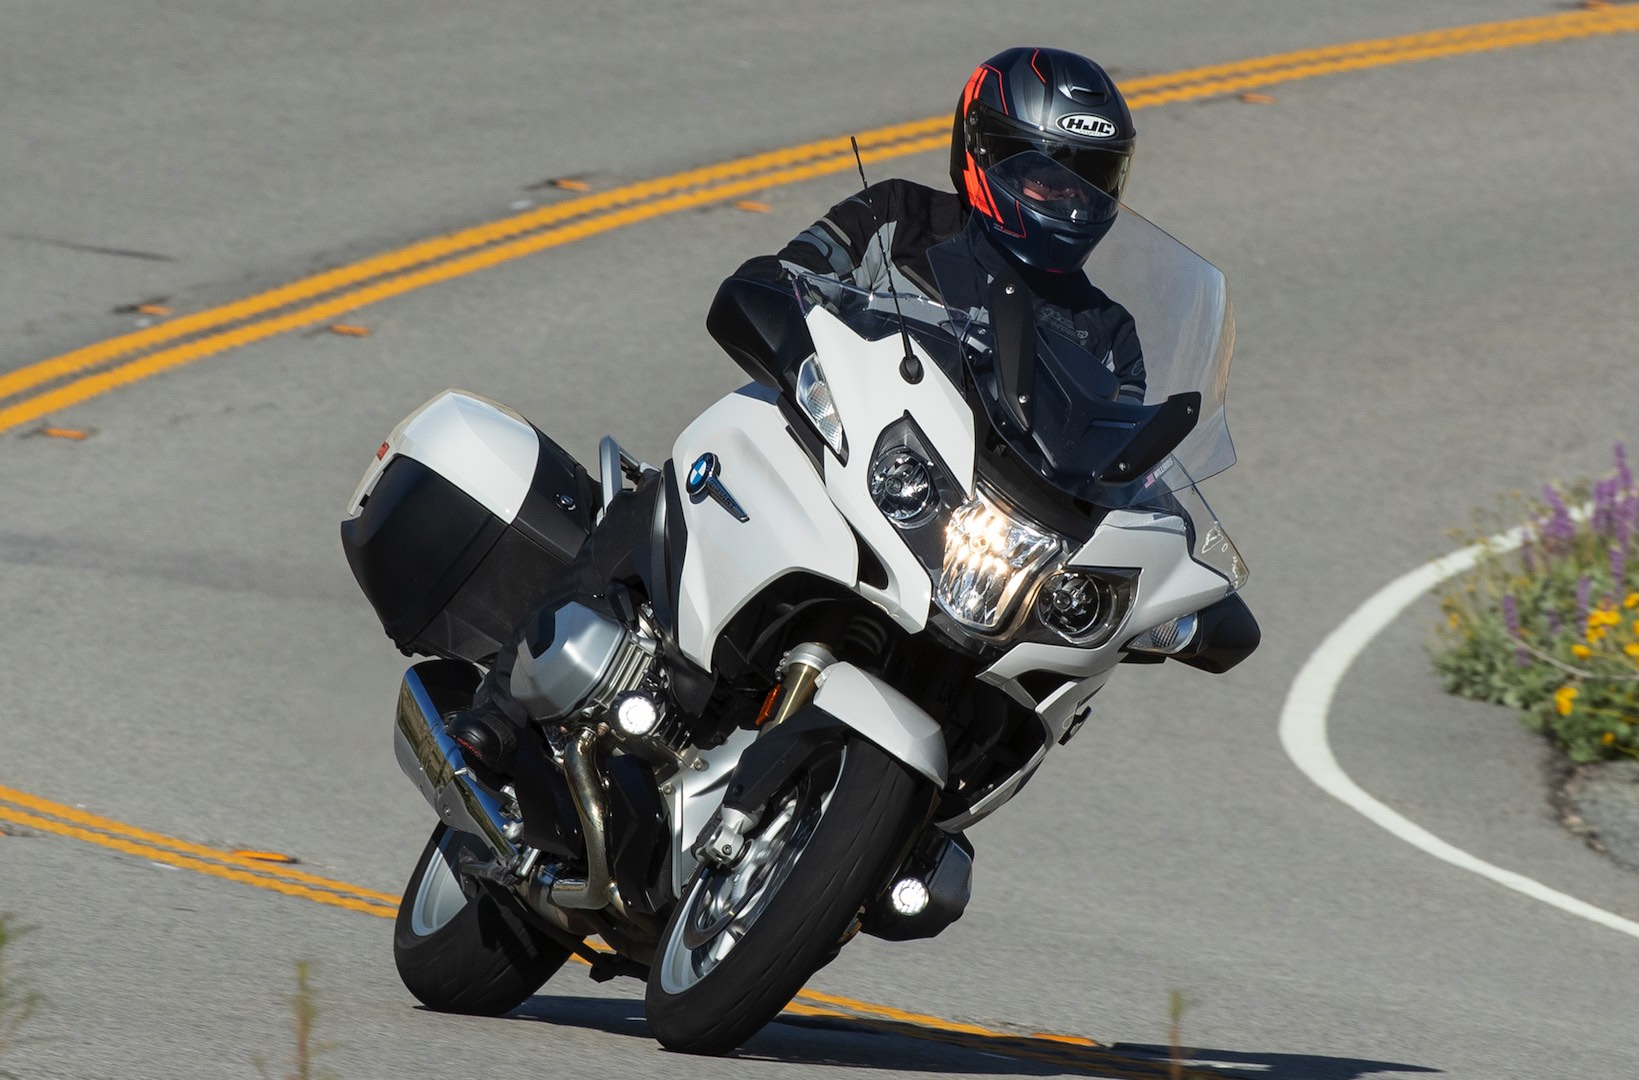 BMW R 1250 RT Sport Touring Motorcycle